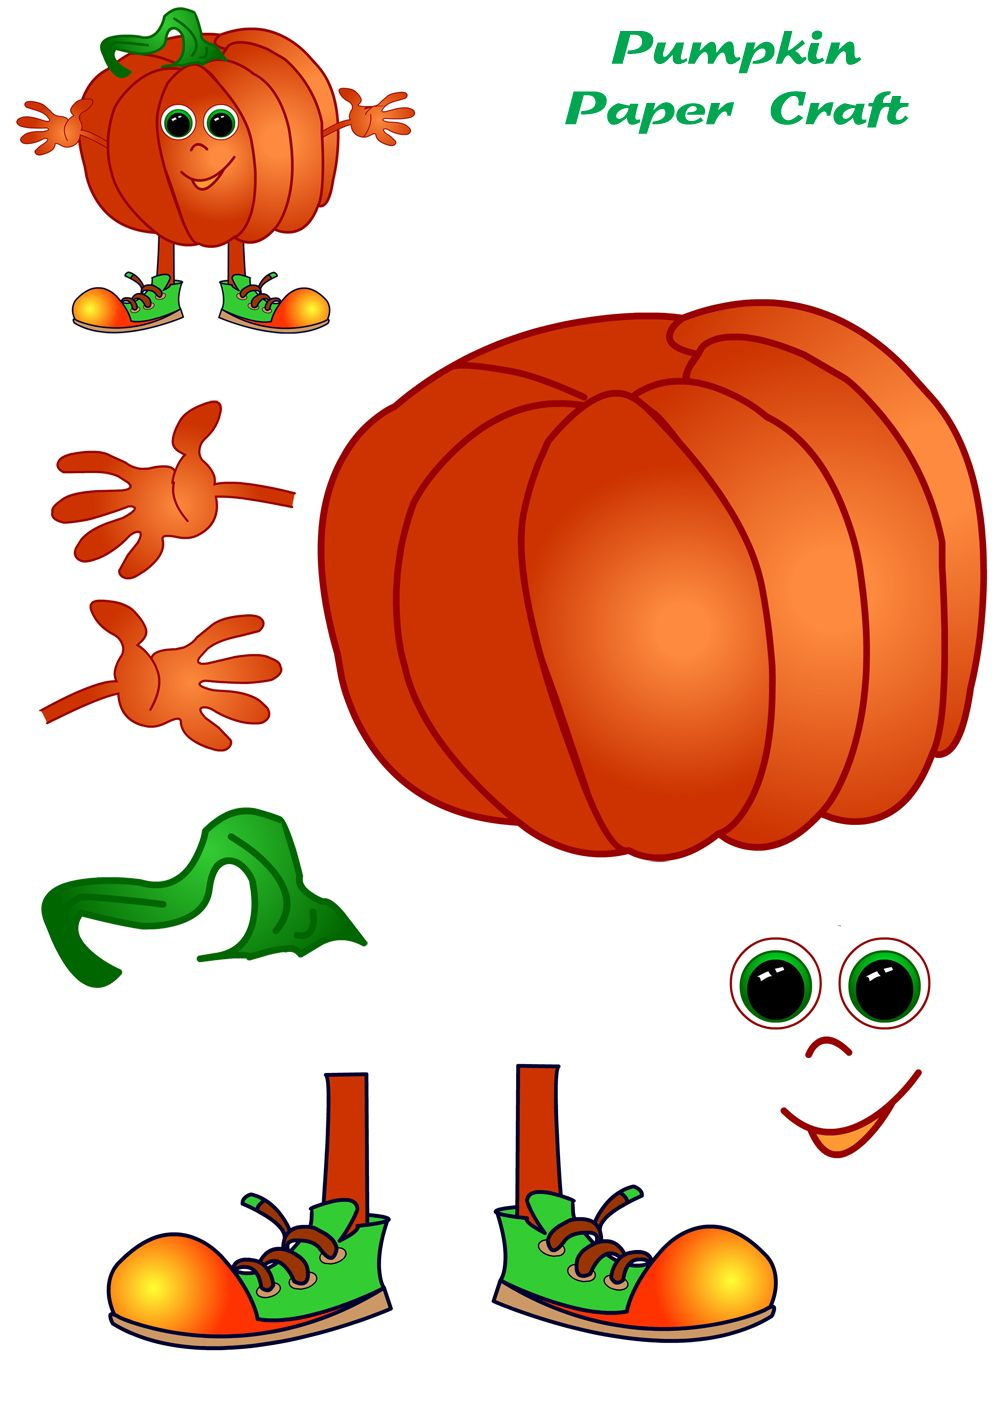 Pumpkin Paper Craft | Halloween | Pinterest